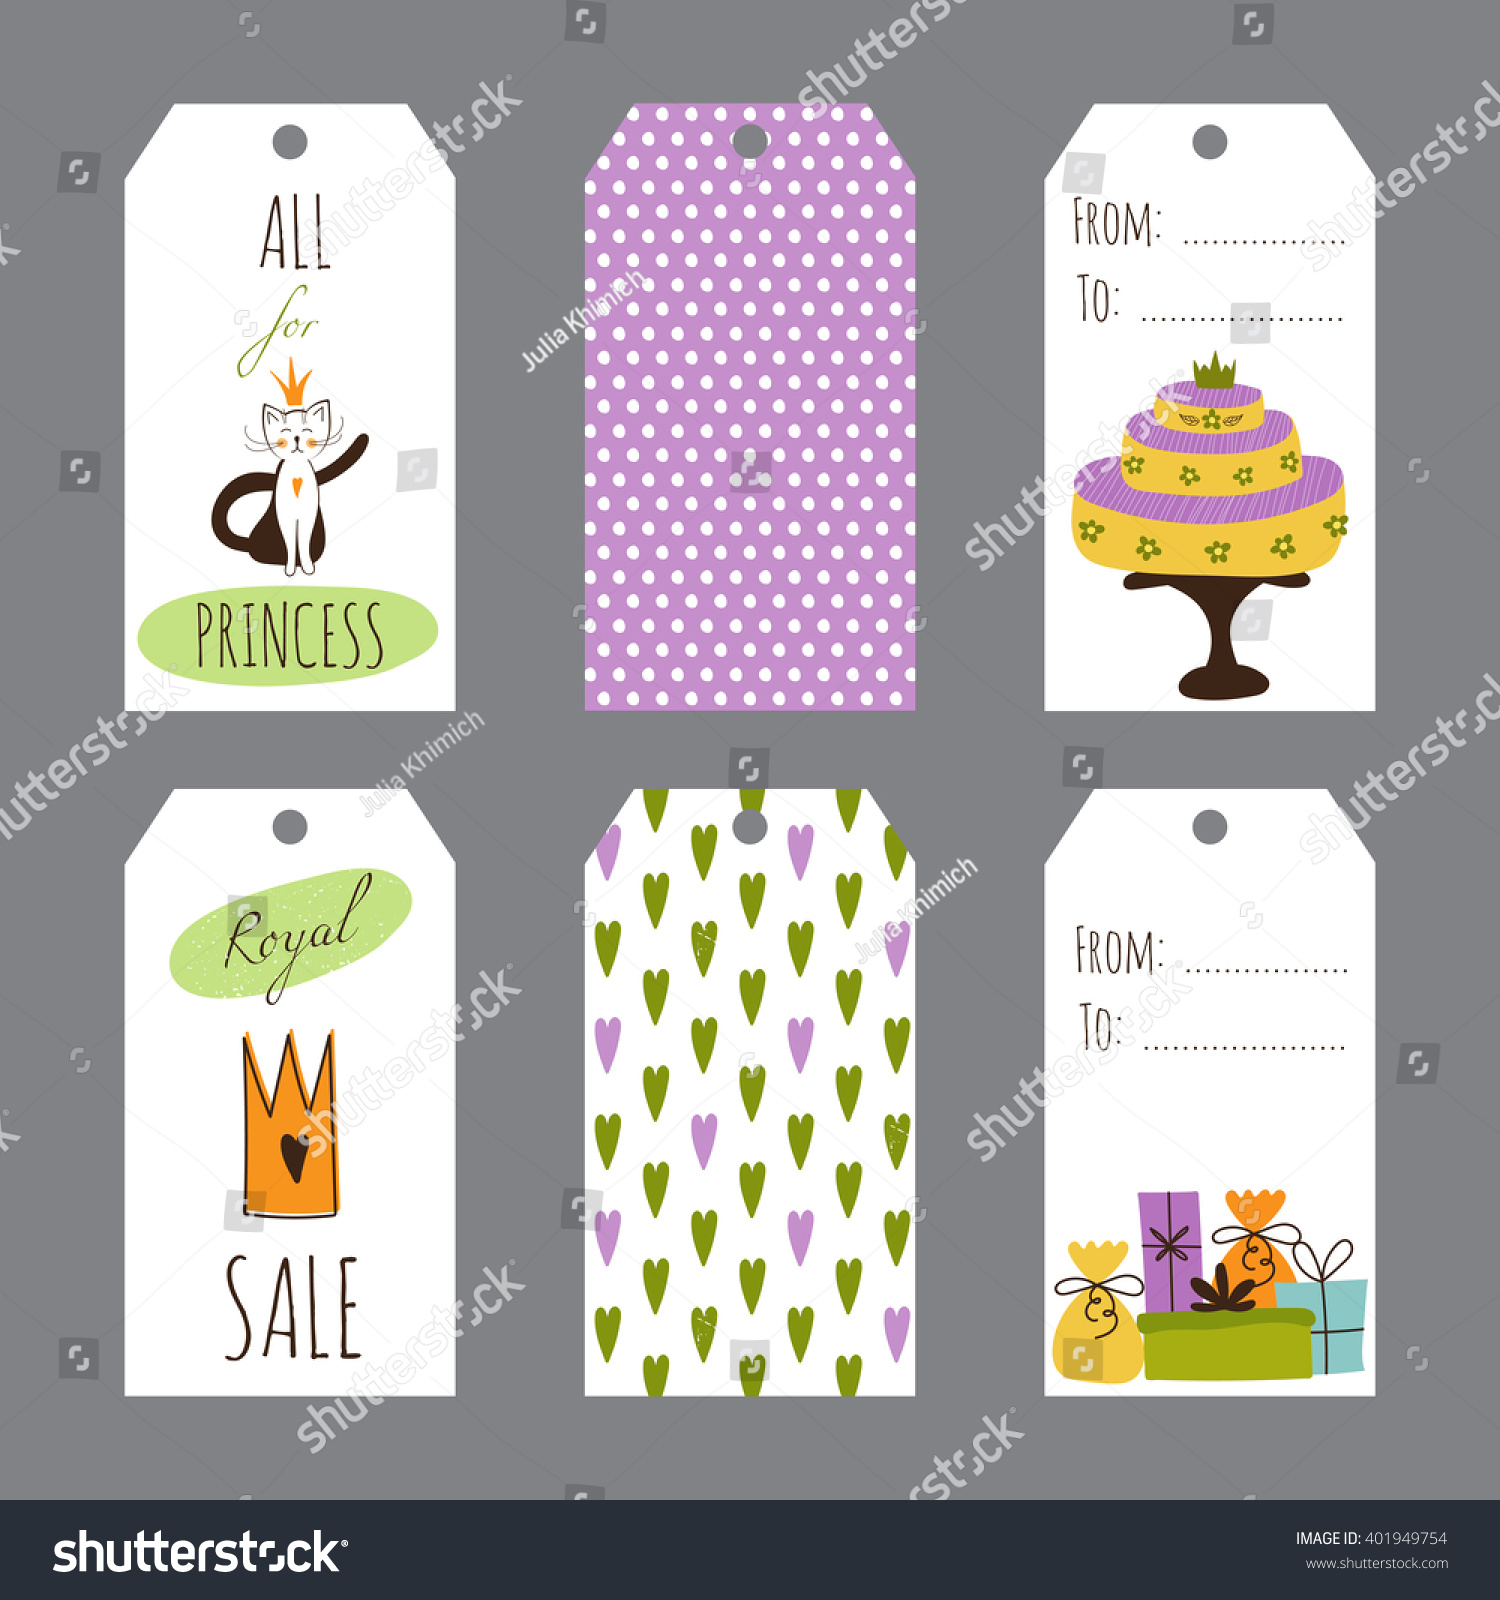 birthday souvenir tags template ; stock-vector-vector-princess-party-set-of-tag-templates-cute-collection-for-birthday-greeting-cards-brochures-401949754